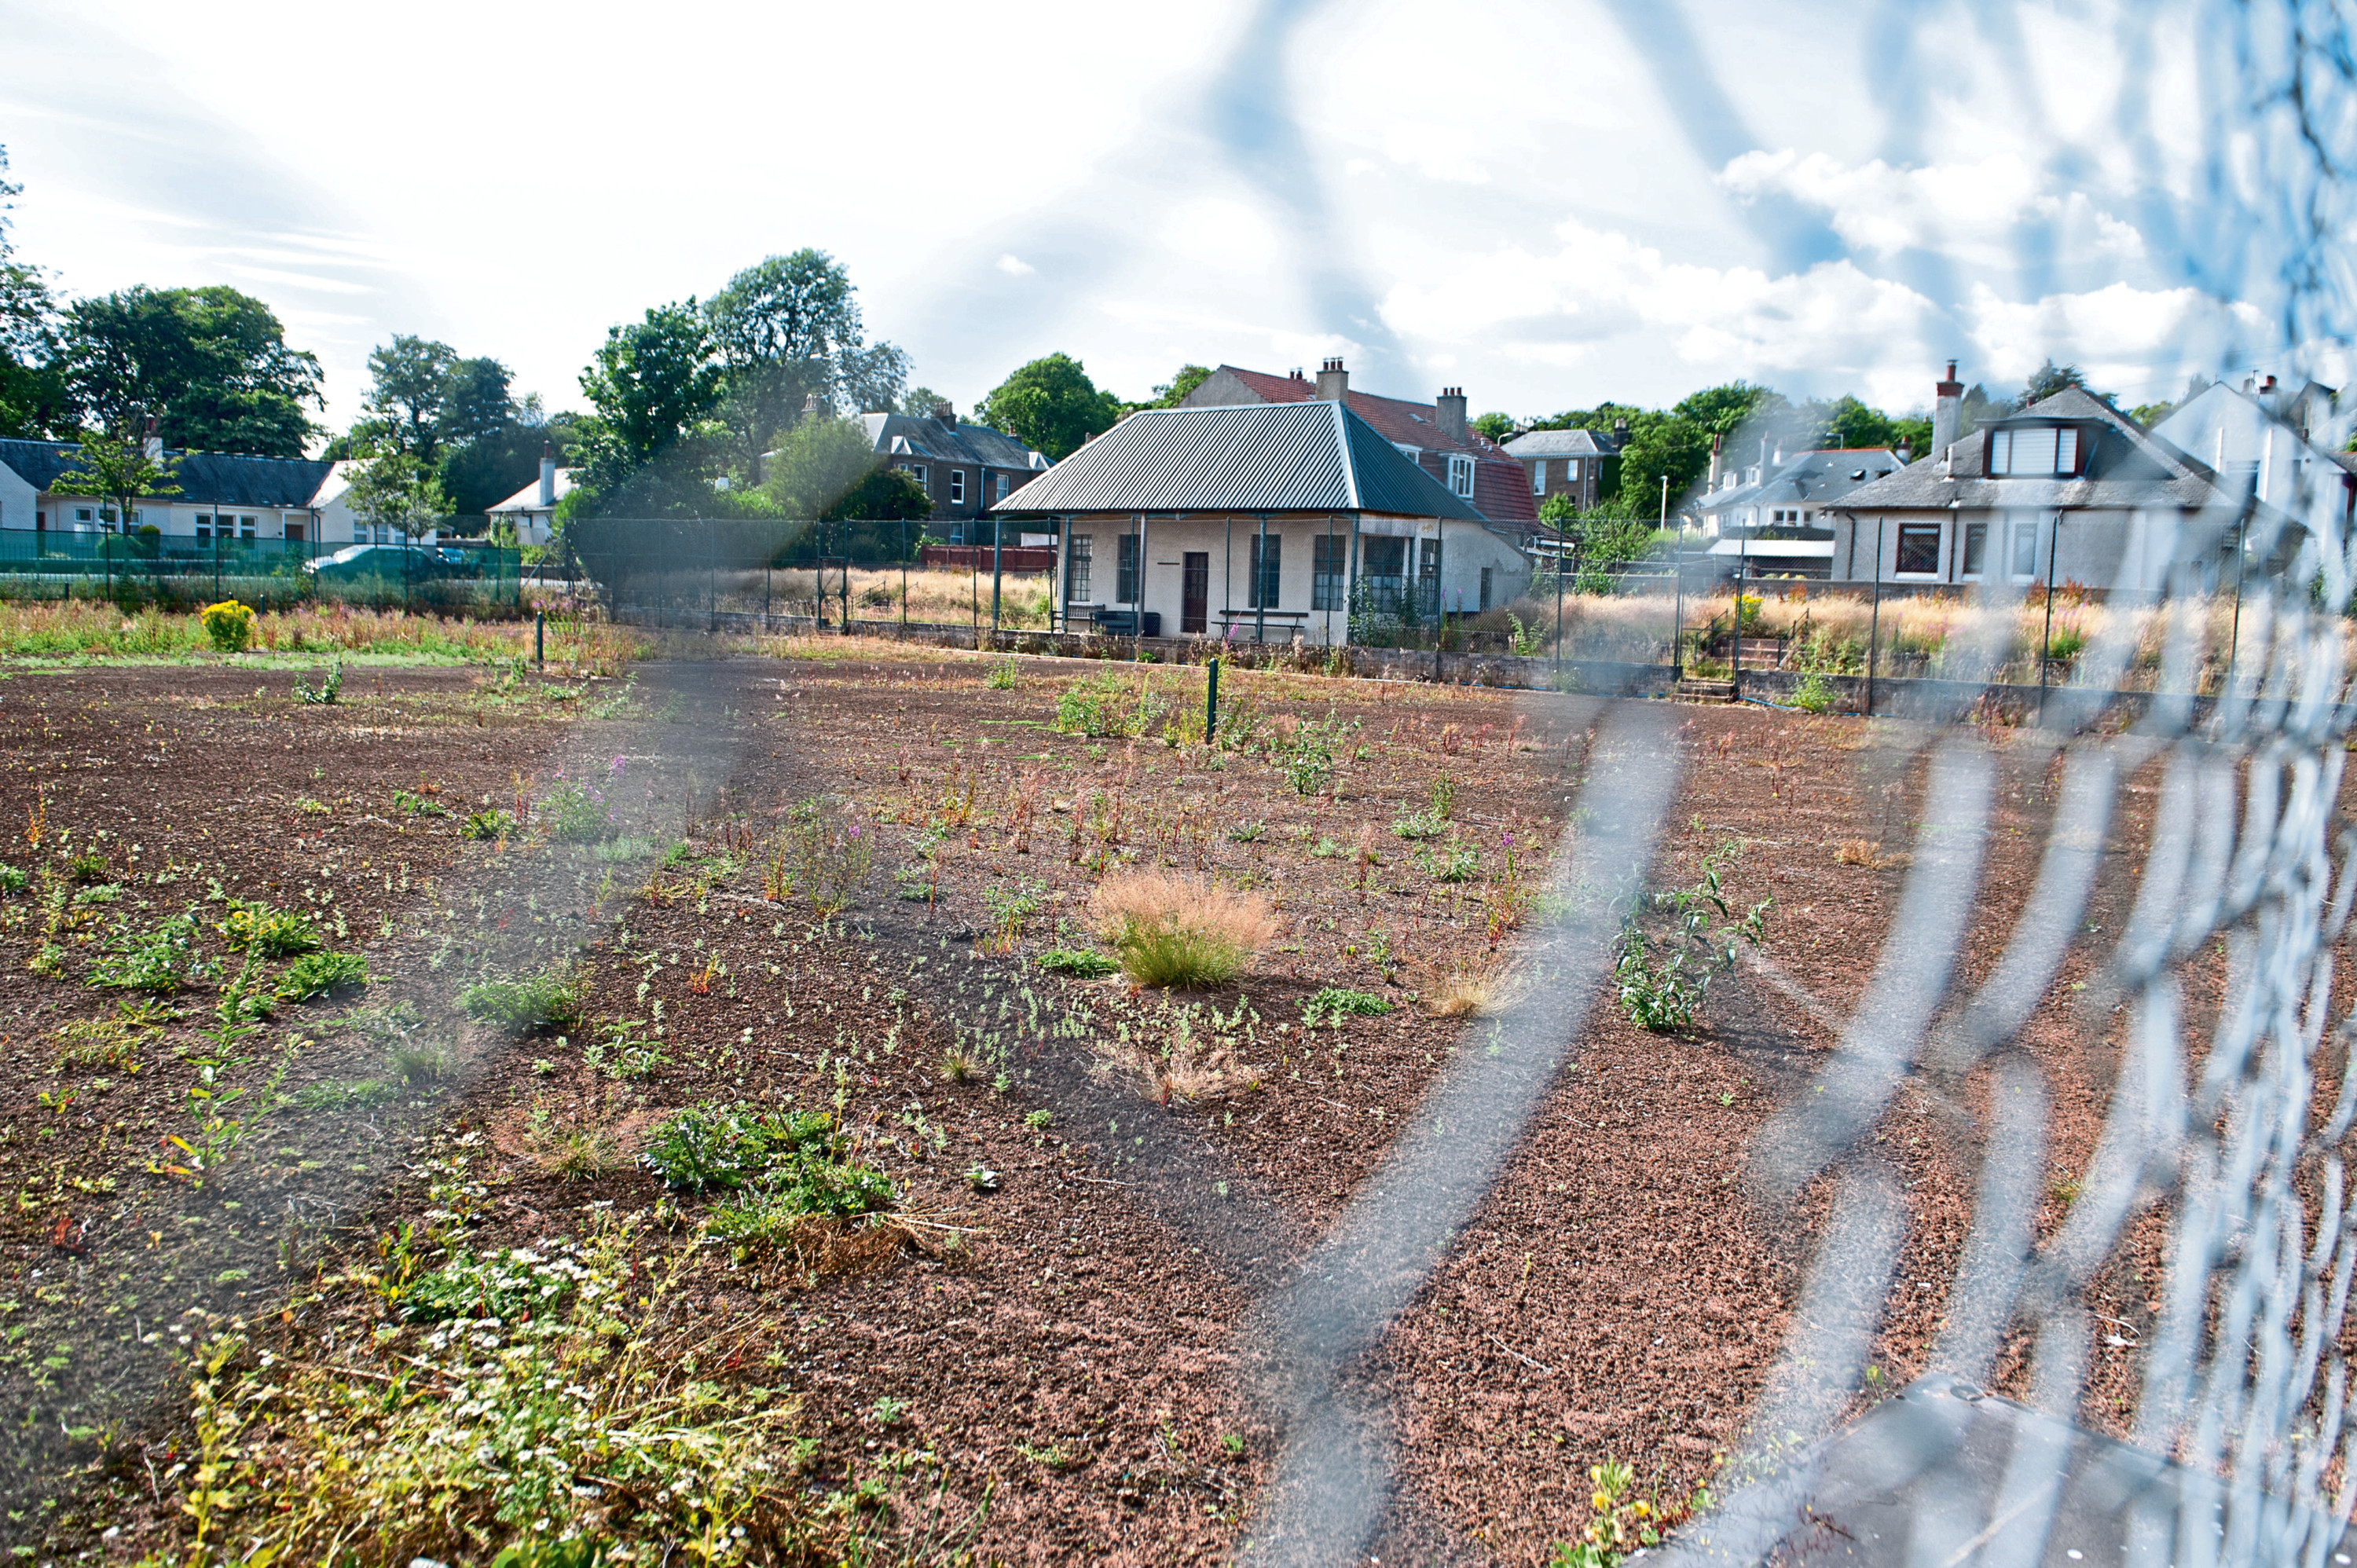 The future of Craigmuir Tennis Club in Maryfield is to be discussed at a meeting on Wednesday evening